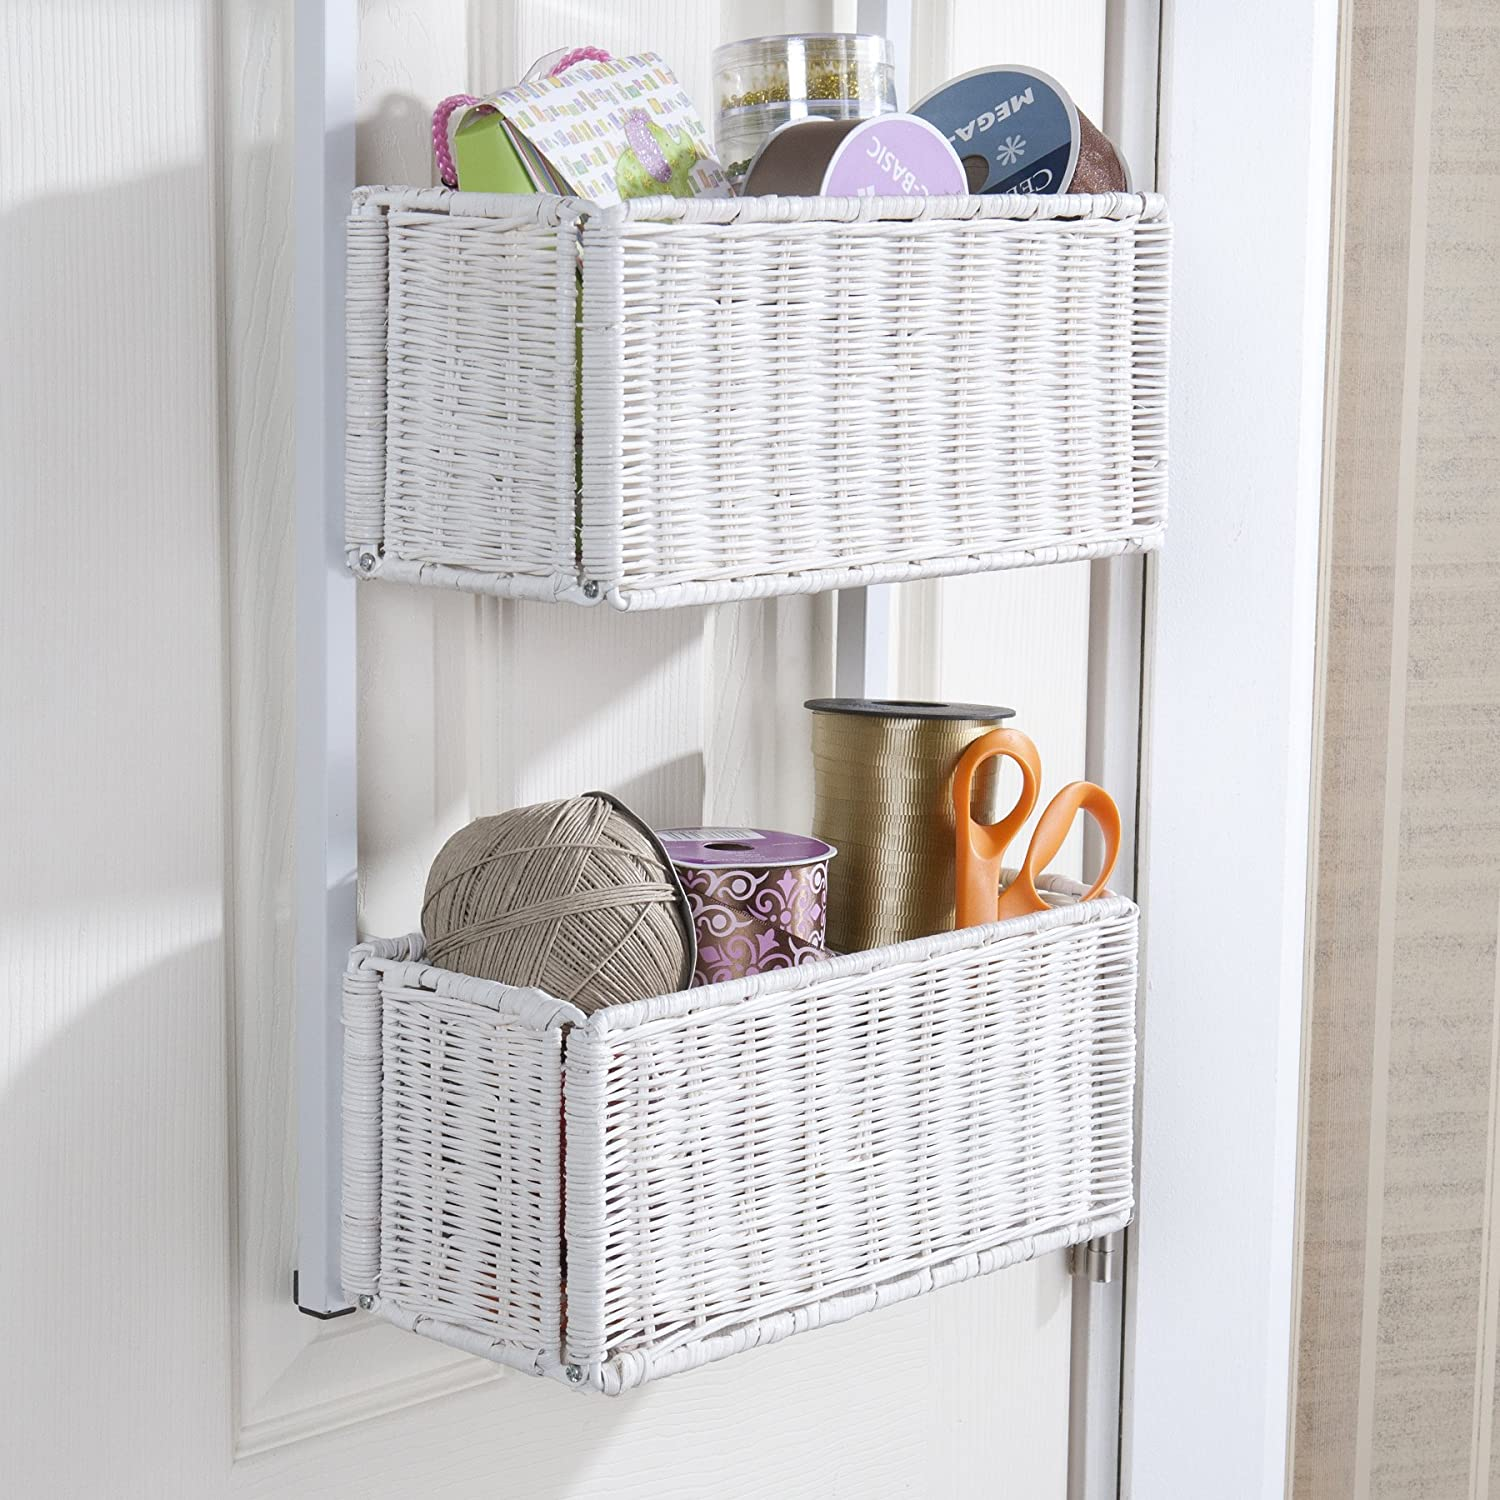 Amazon.com Southern Enterprise Over-The-Door 3-Tier Woven Basket Storage White Finish Home u0026 Kitchen & Amazon.com: Southern Enterprise Over-The-Door 3-Tier Woven Basket ...